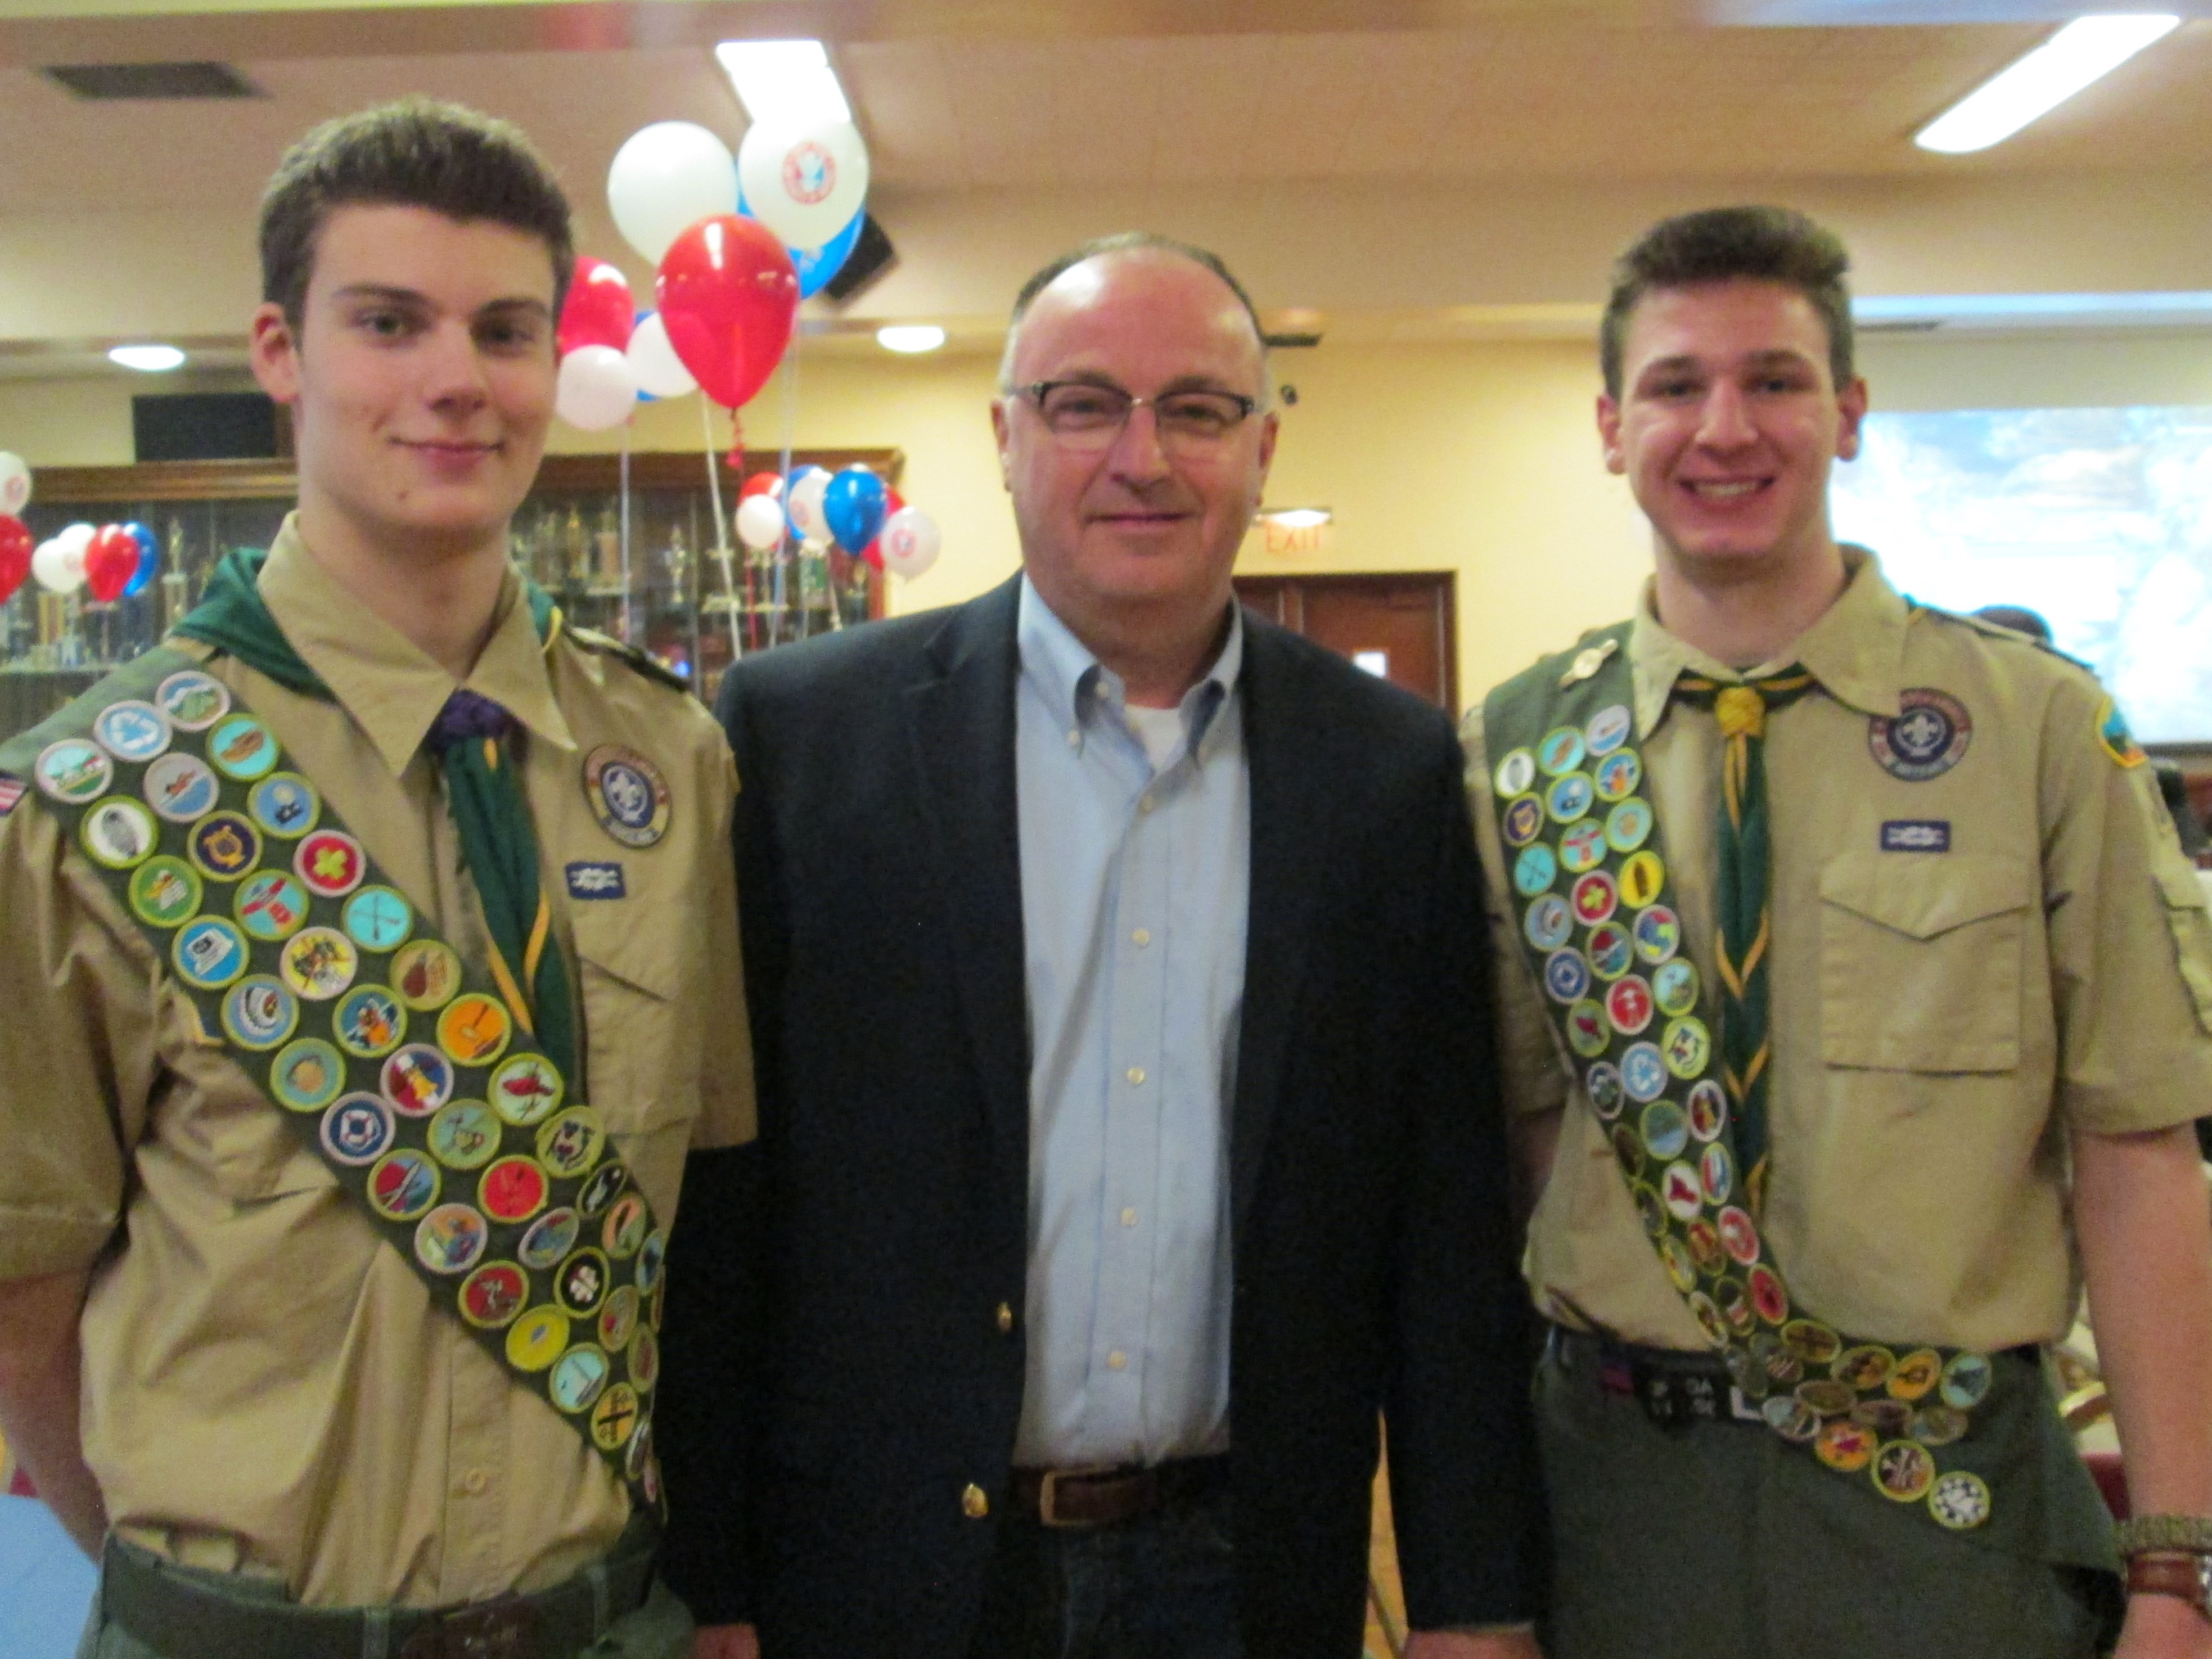 Eagle Scouts Ben and Jack